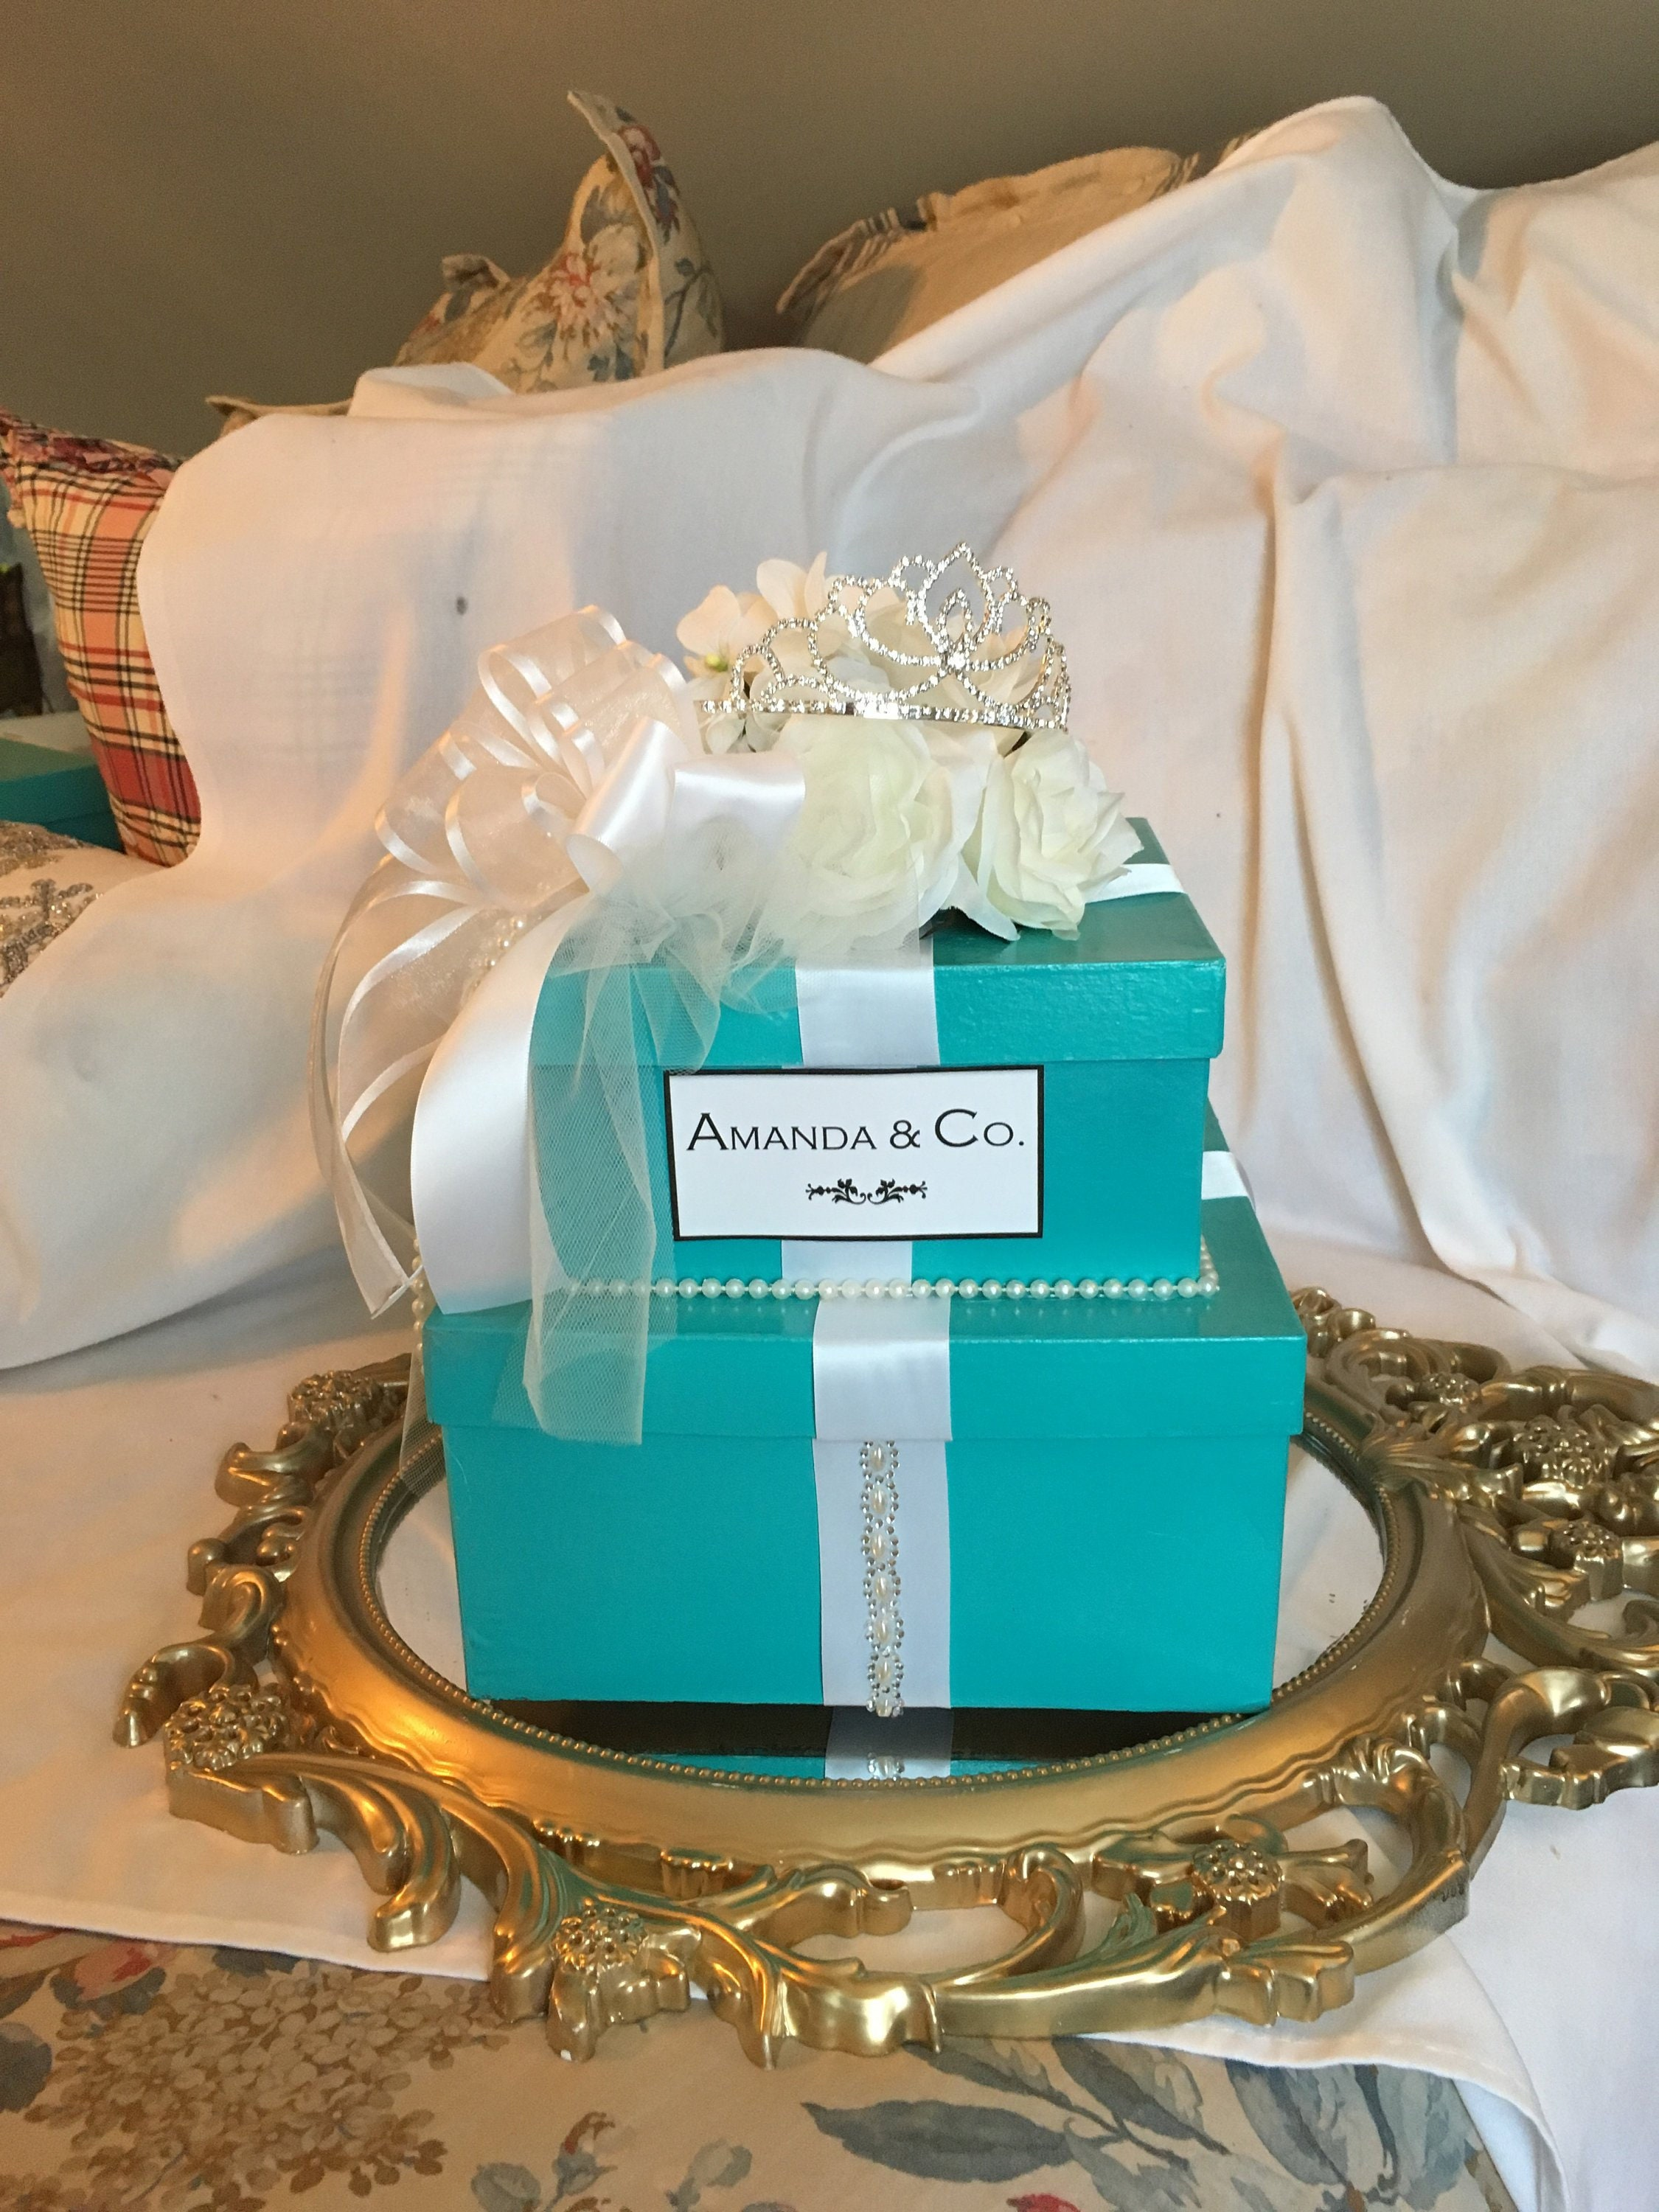 Baby And Co Shower Centerpiece Tiffany Inspired Centerpiece Tiffany